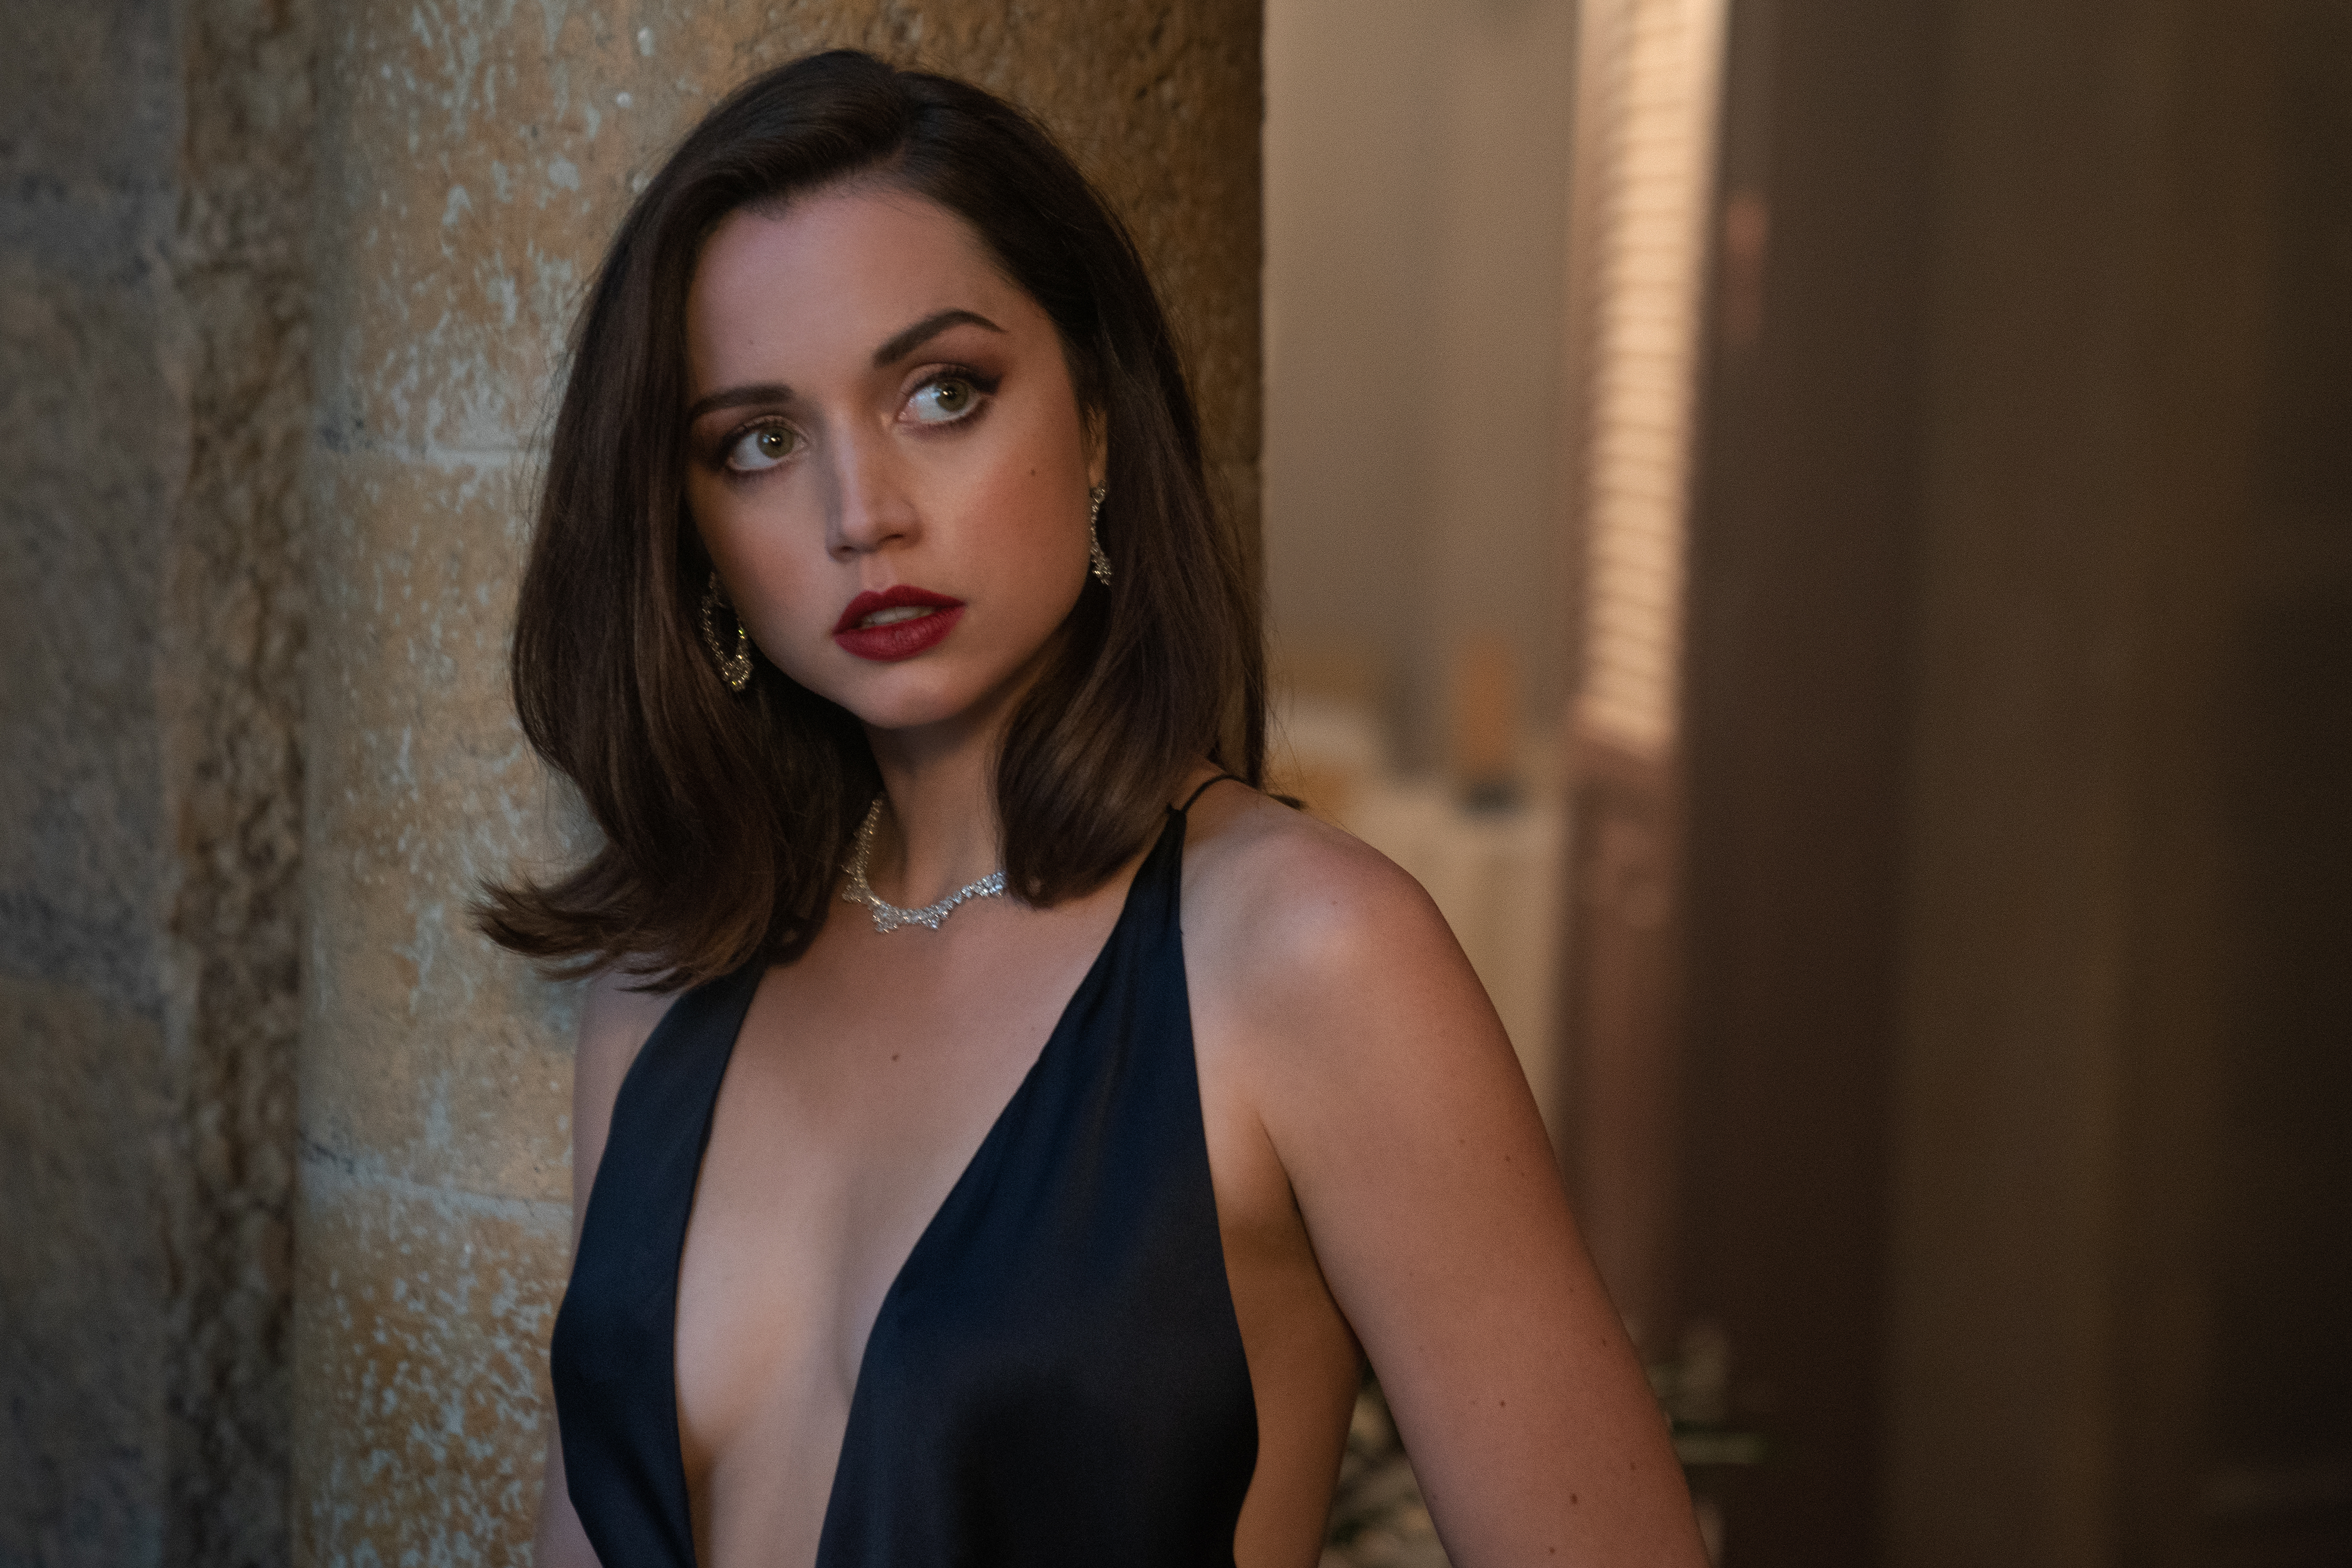 Ana de Armas in No Time to Die (2021)